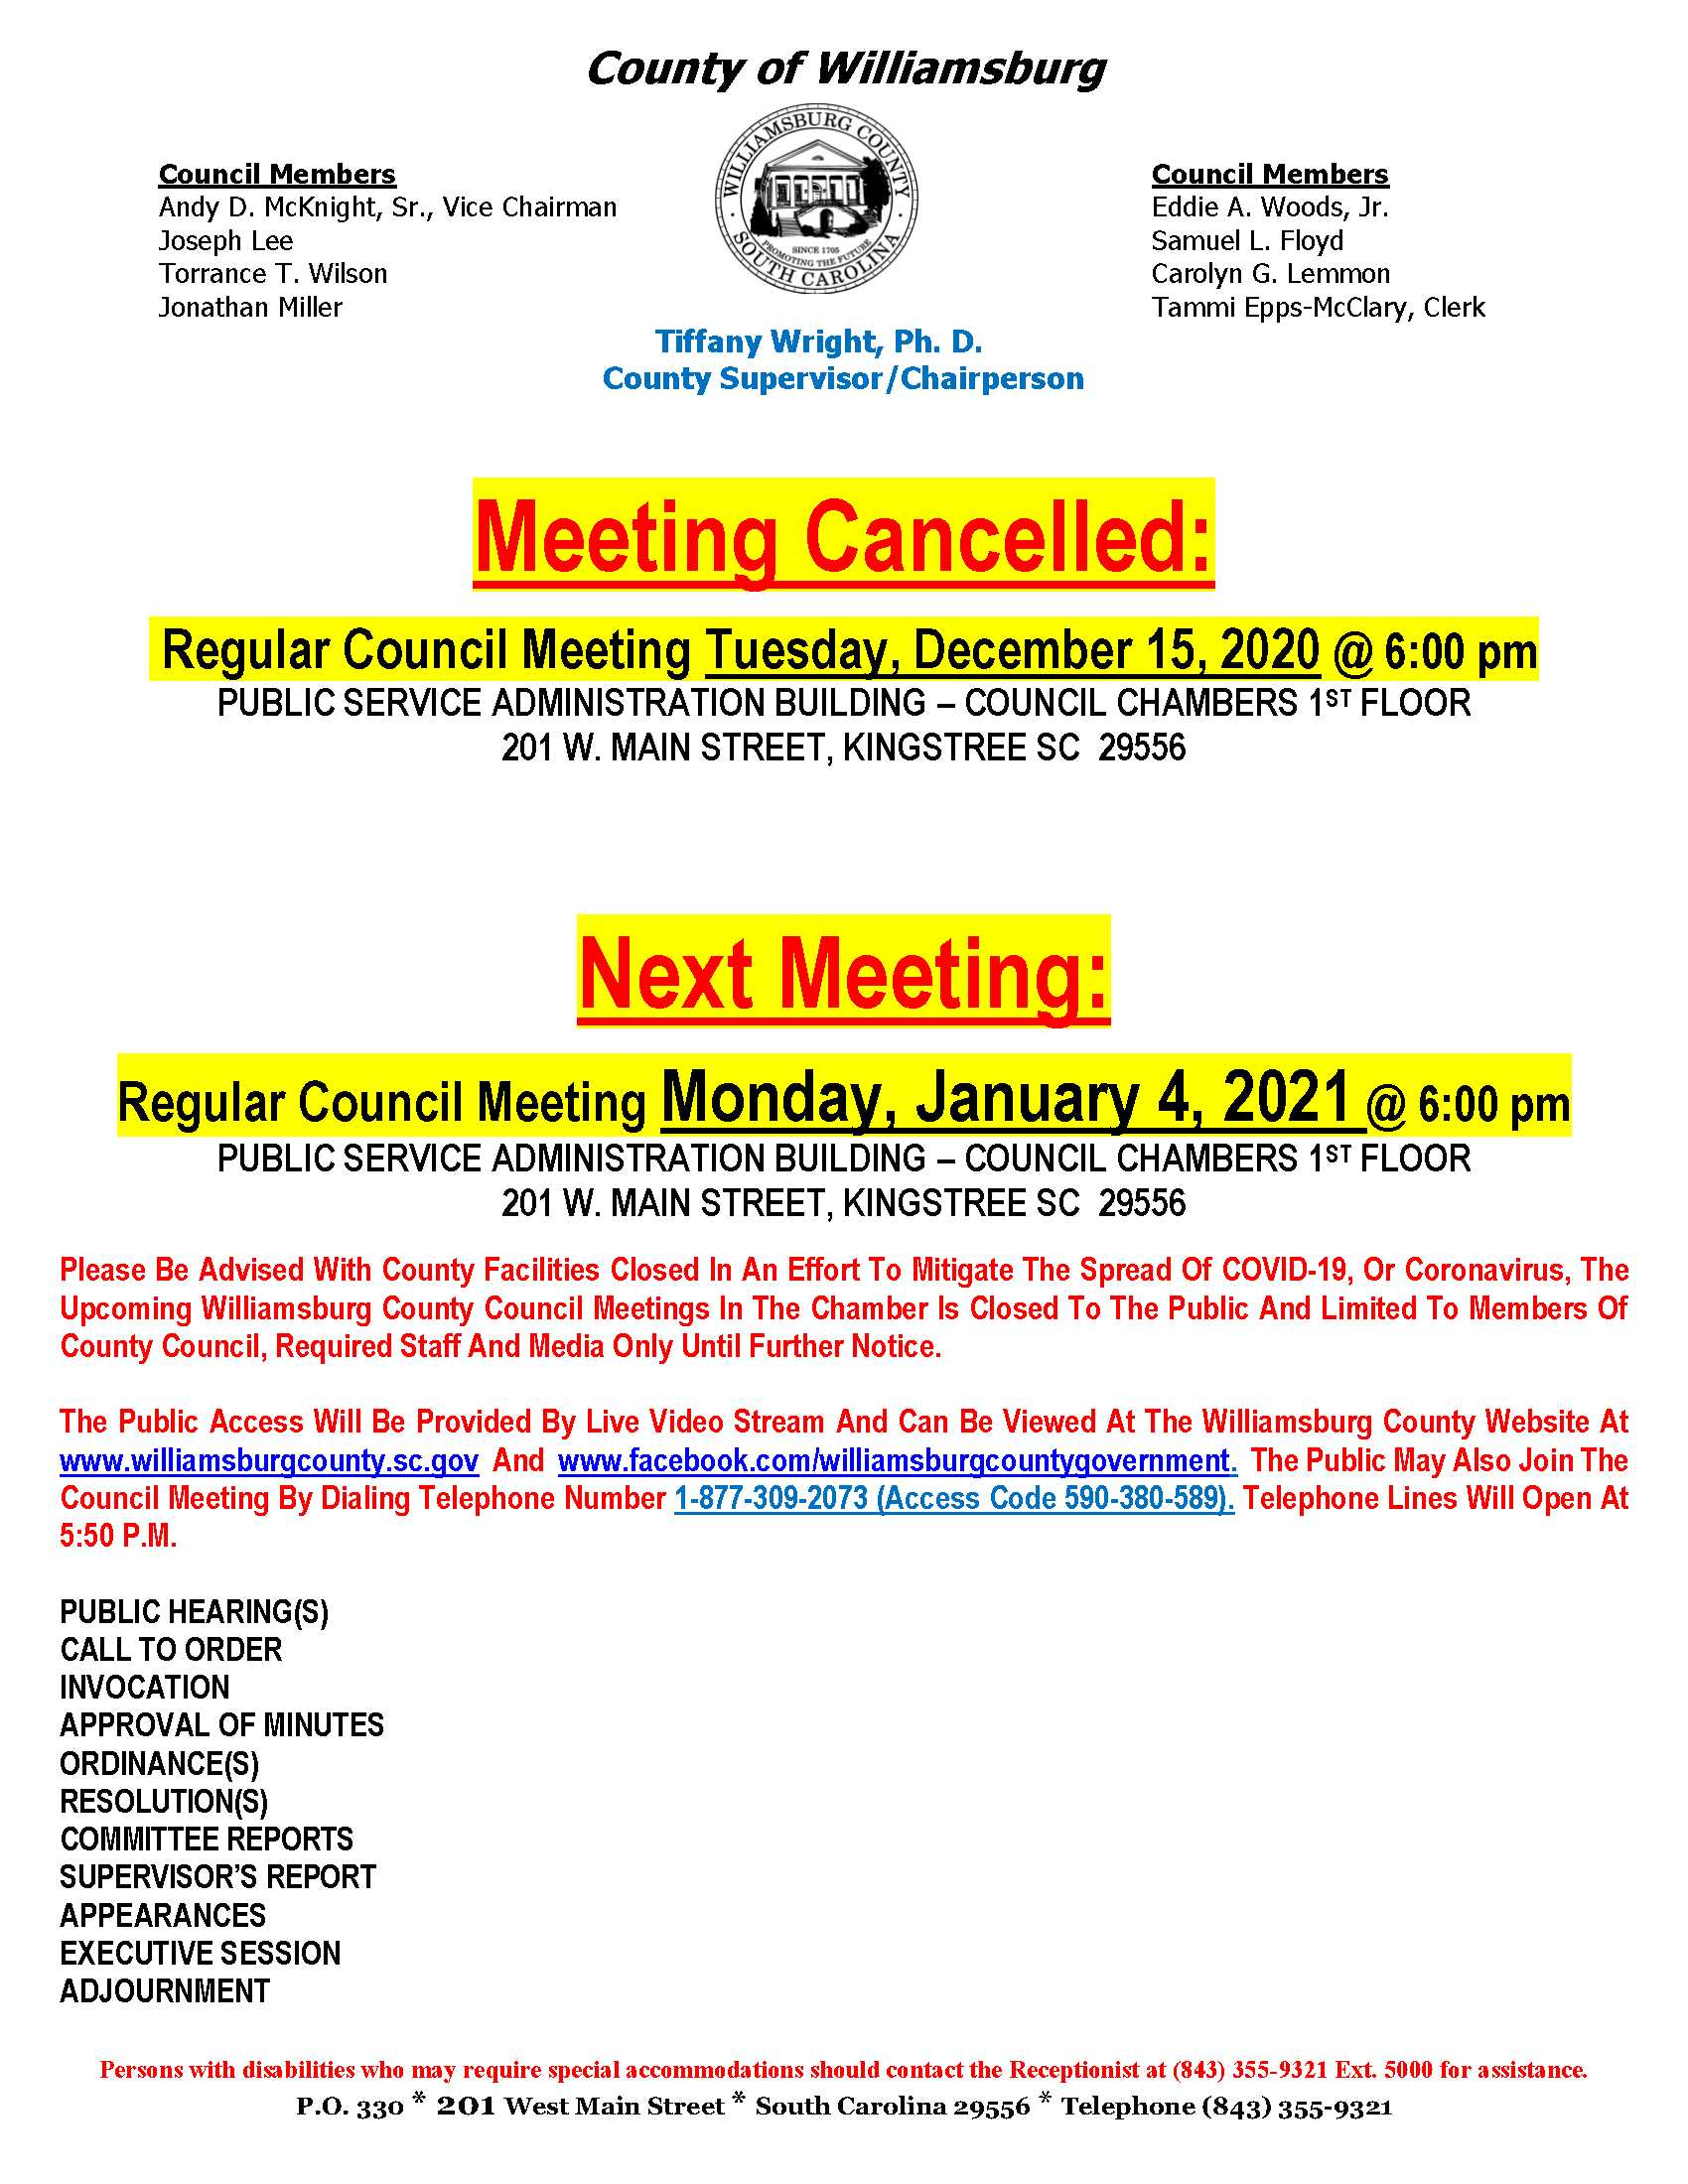 AGE-RCM 12-15-20 Cancelled